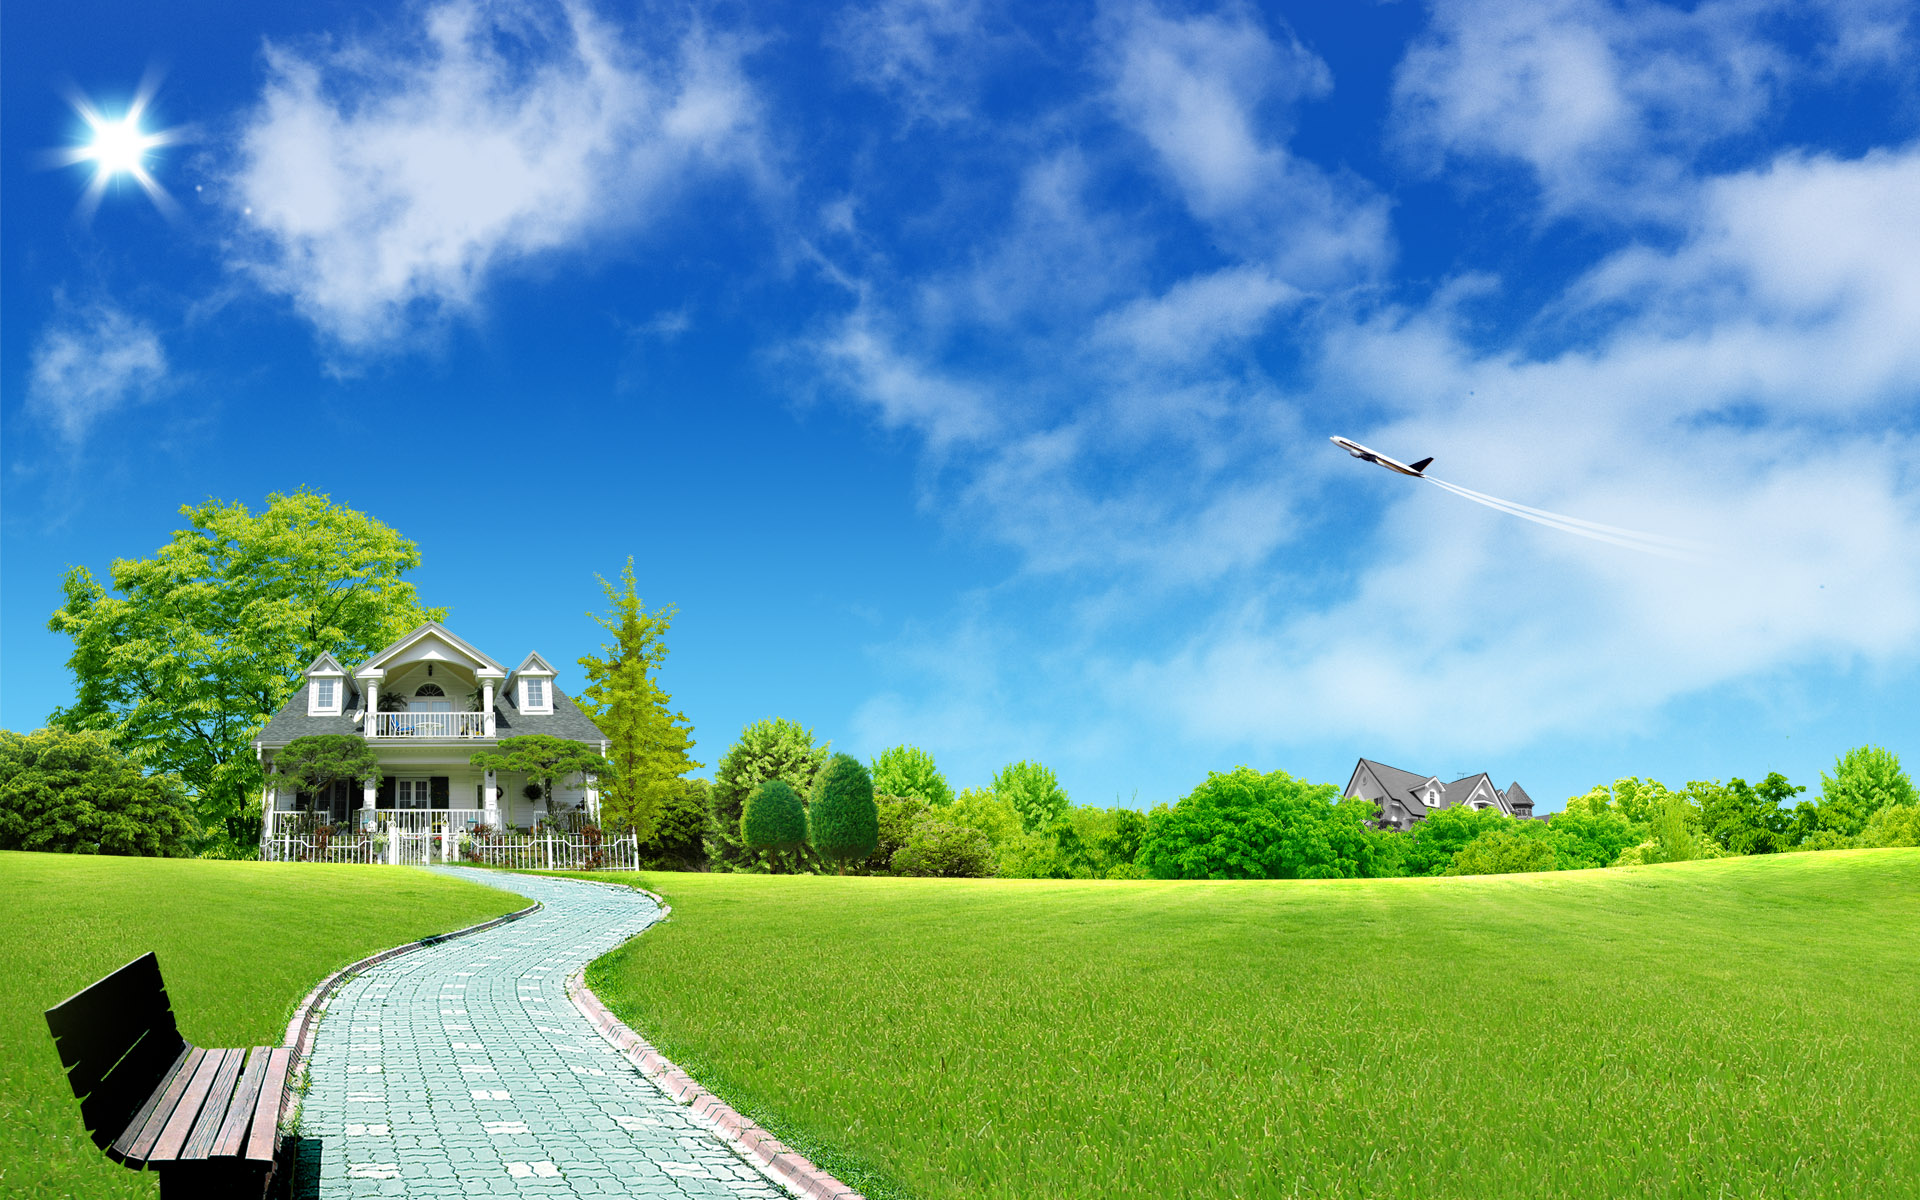 Green Home Wallpapers HD Wallpapers 1920x1200